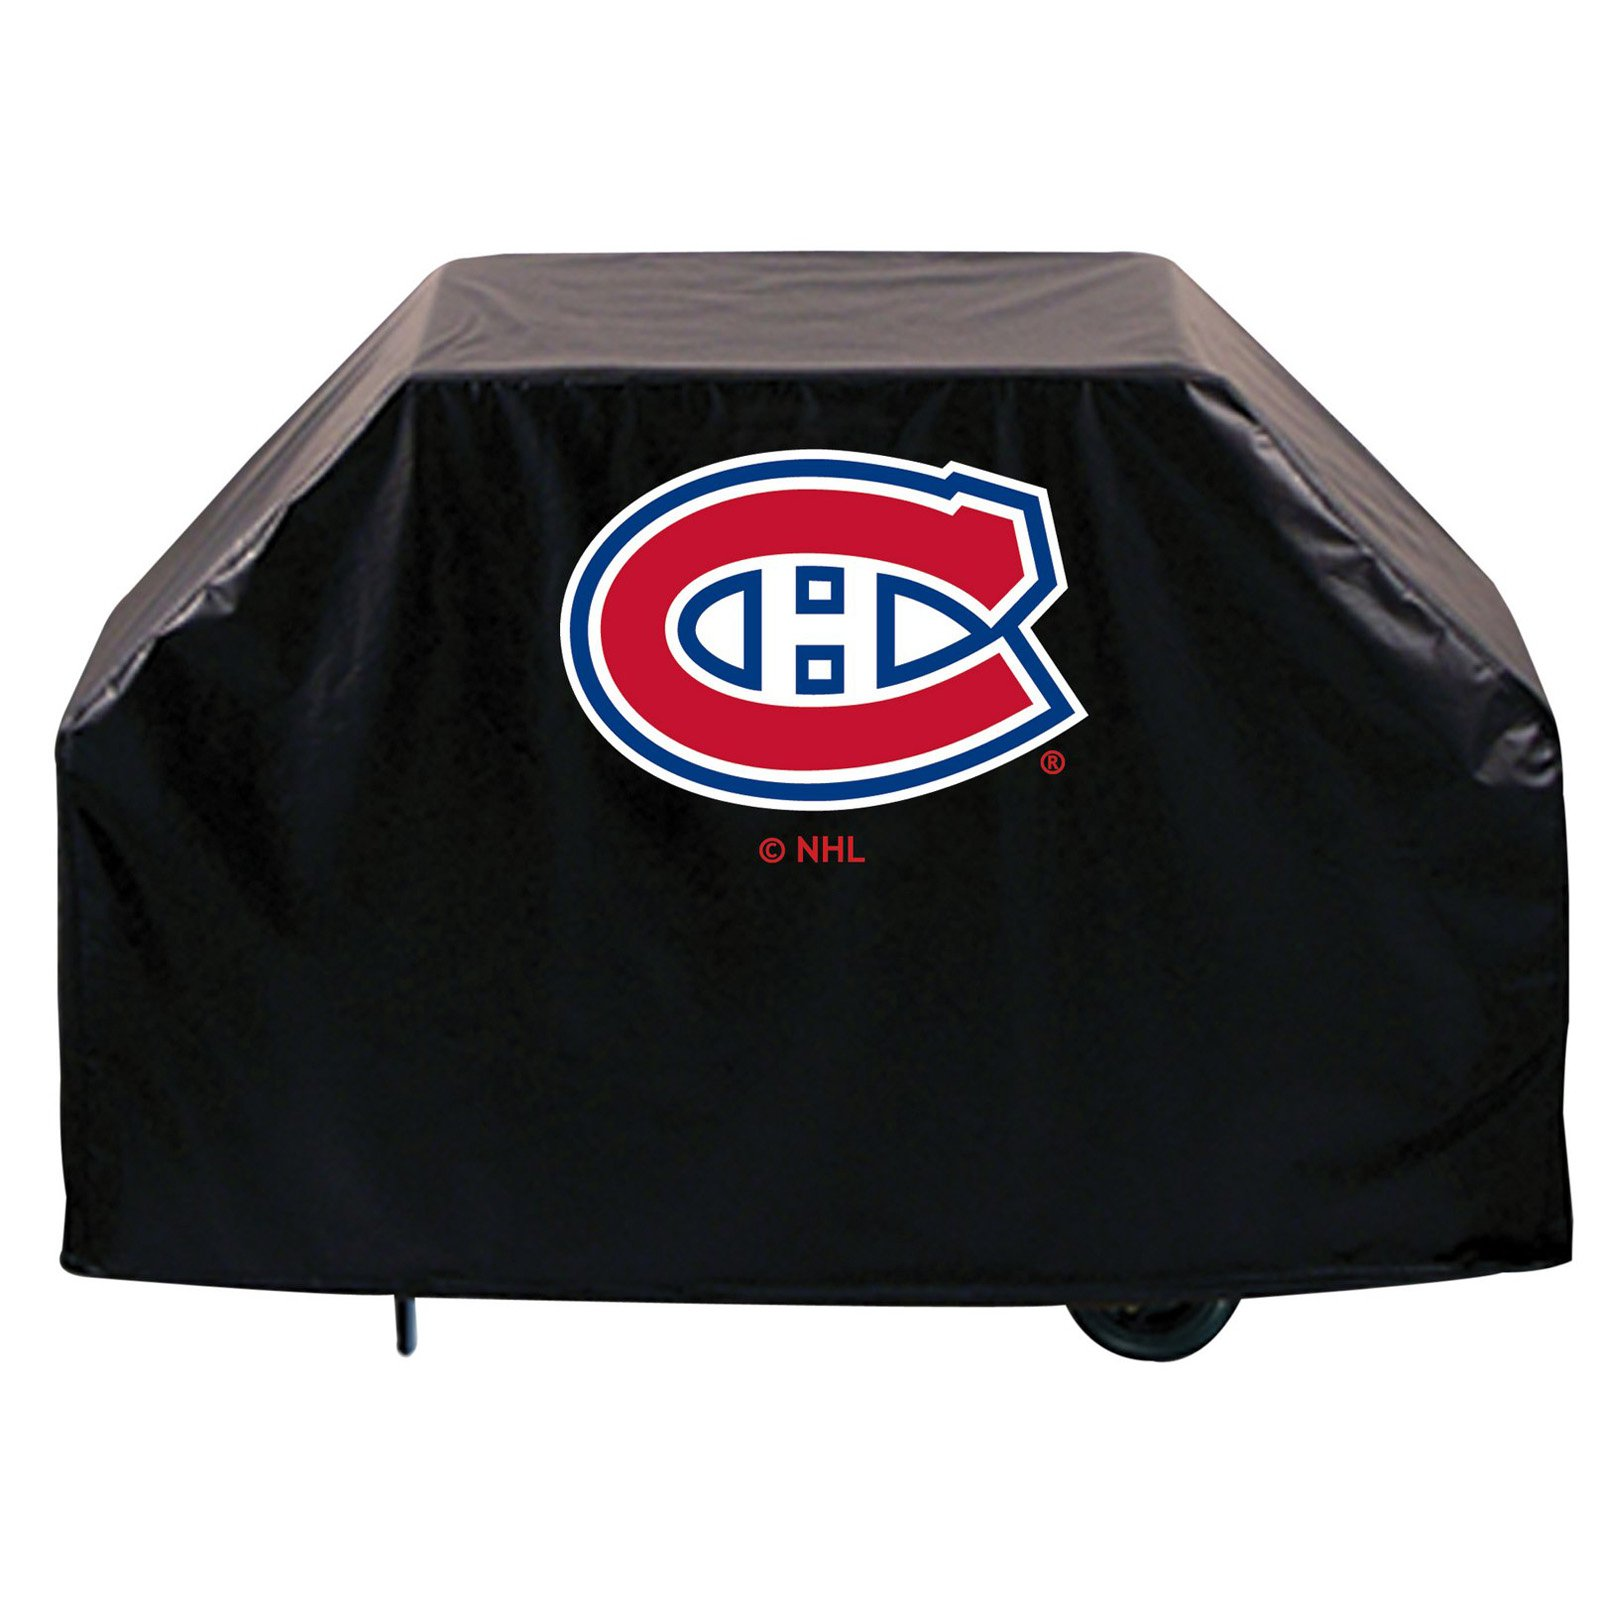 Holland 60 In Nhl Grill Cover In 2019 Products Pinterest